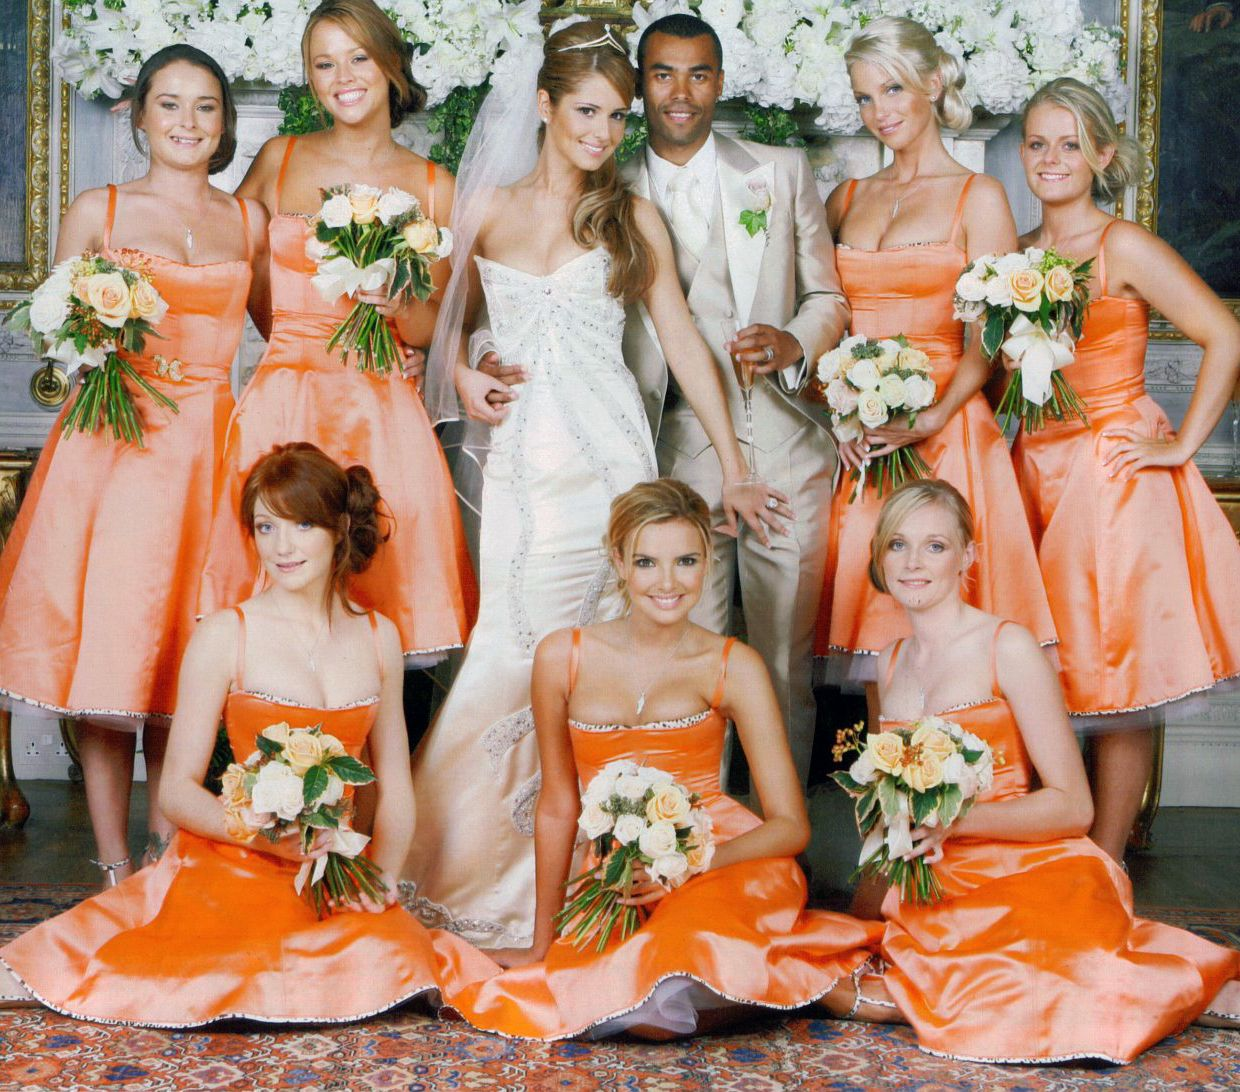 Horrible Wedding Dresses: Celebrity Wedding Dress Superlatives